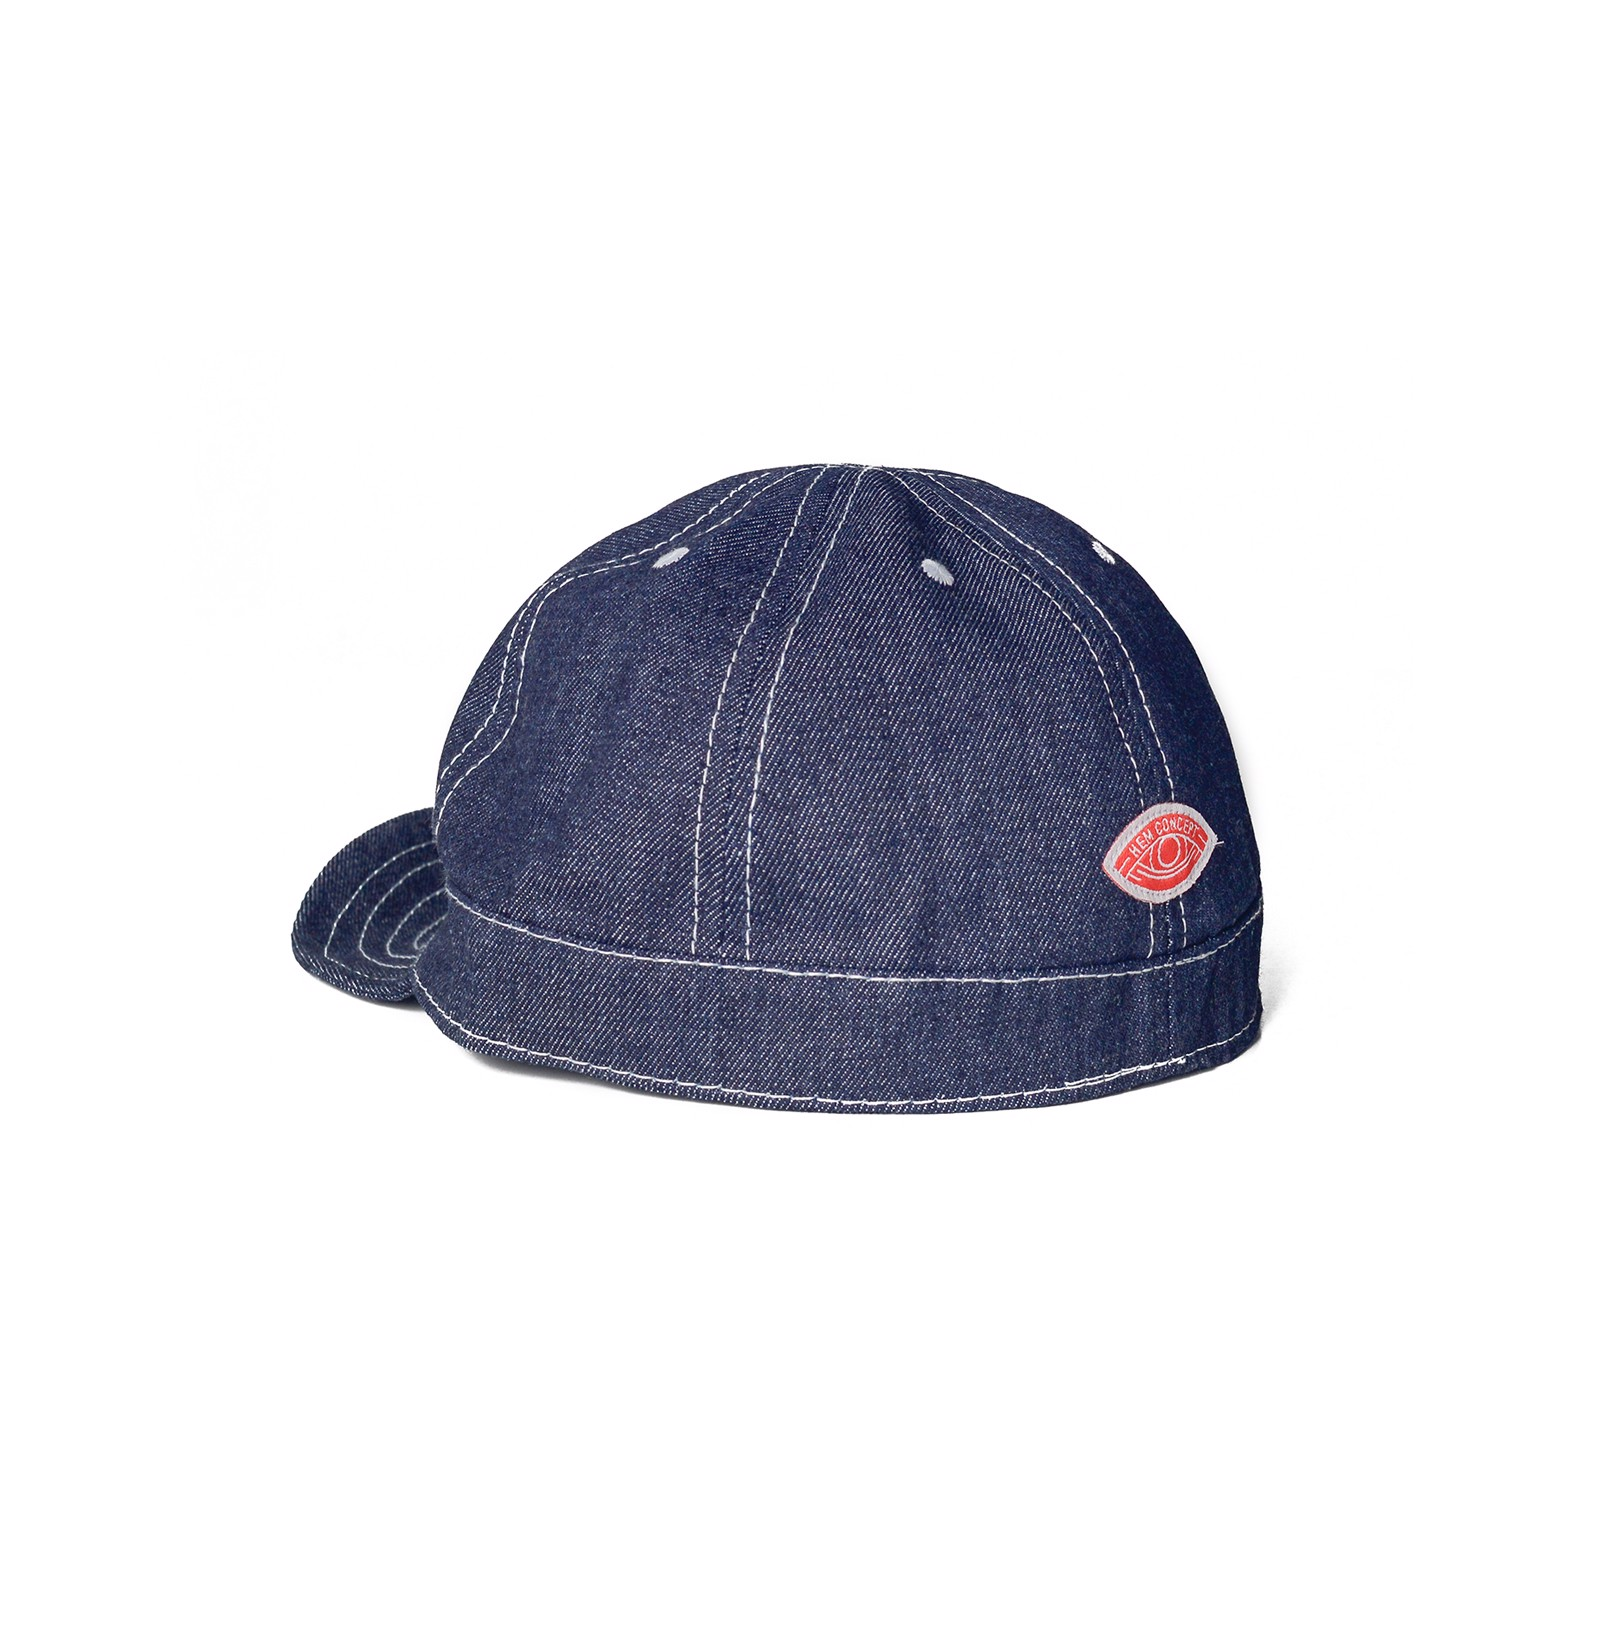 CYCLING CAP - JEAN